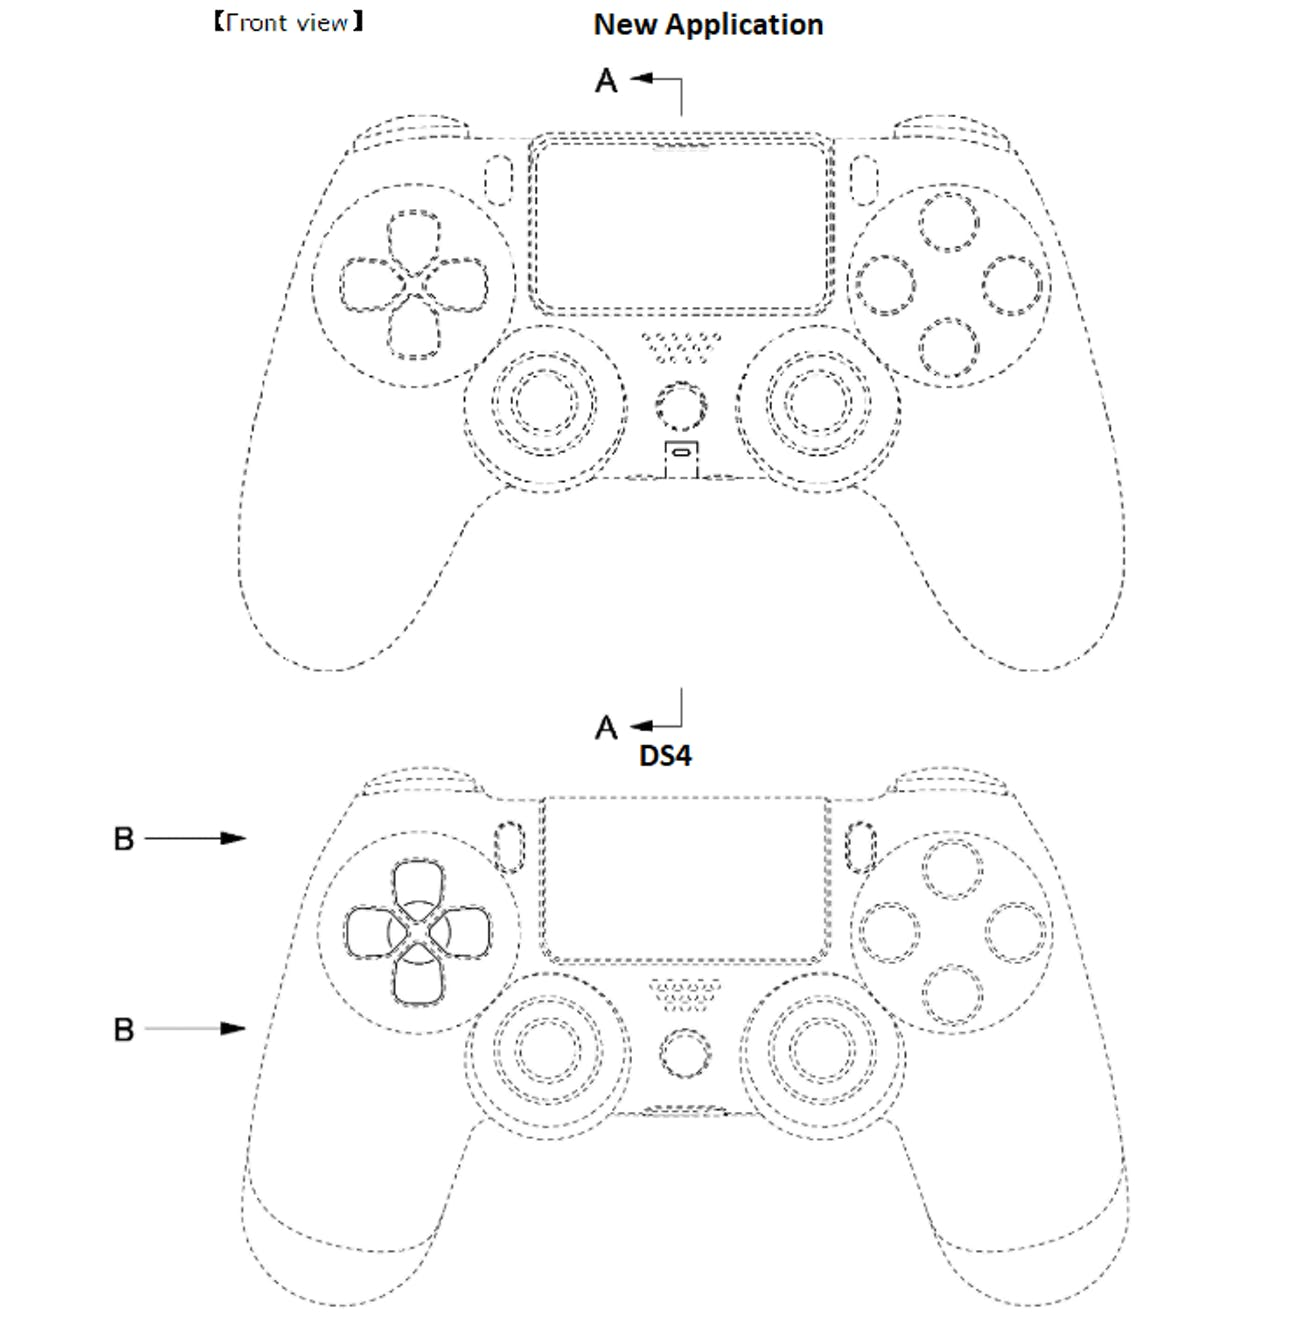 playstation 5 playstation 4 ps4 ps5 controllers dualshock